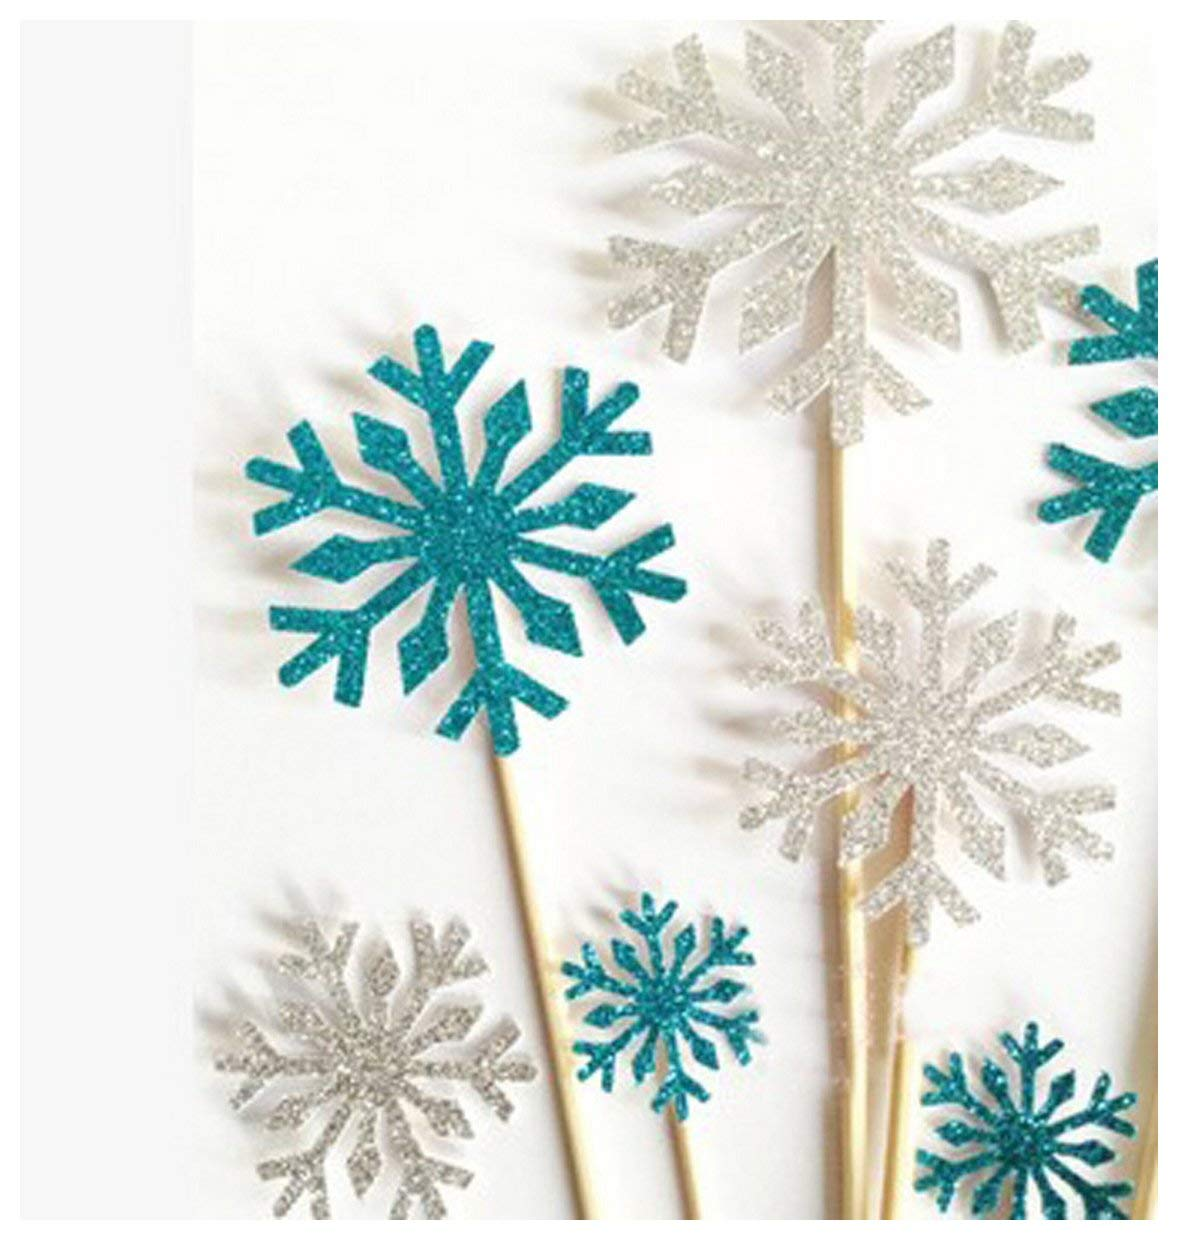 Cake Decorating 10 Counts Frozen Party Supplies Cupcake Toppers Toothpicks Picks Wedding Decorations Silver Or Blue Blue